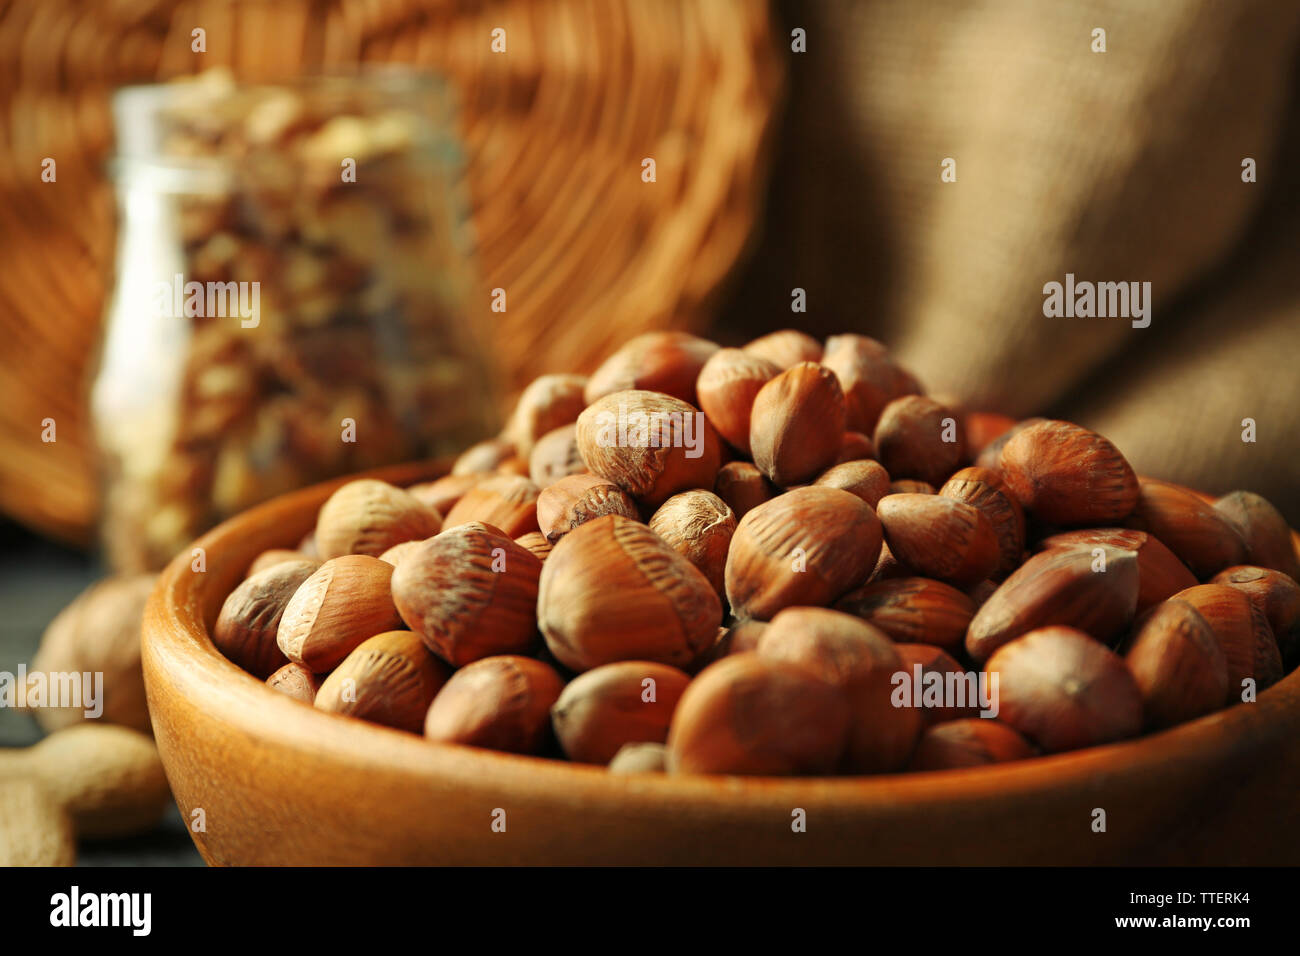 Hazelnuts, walnuts, peanuts in the bowl and glass jar on the table, close-up Stock Photo